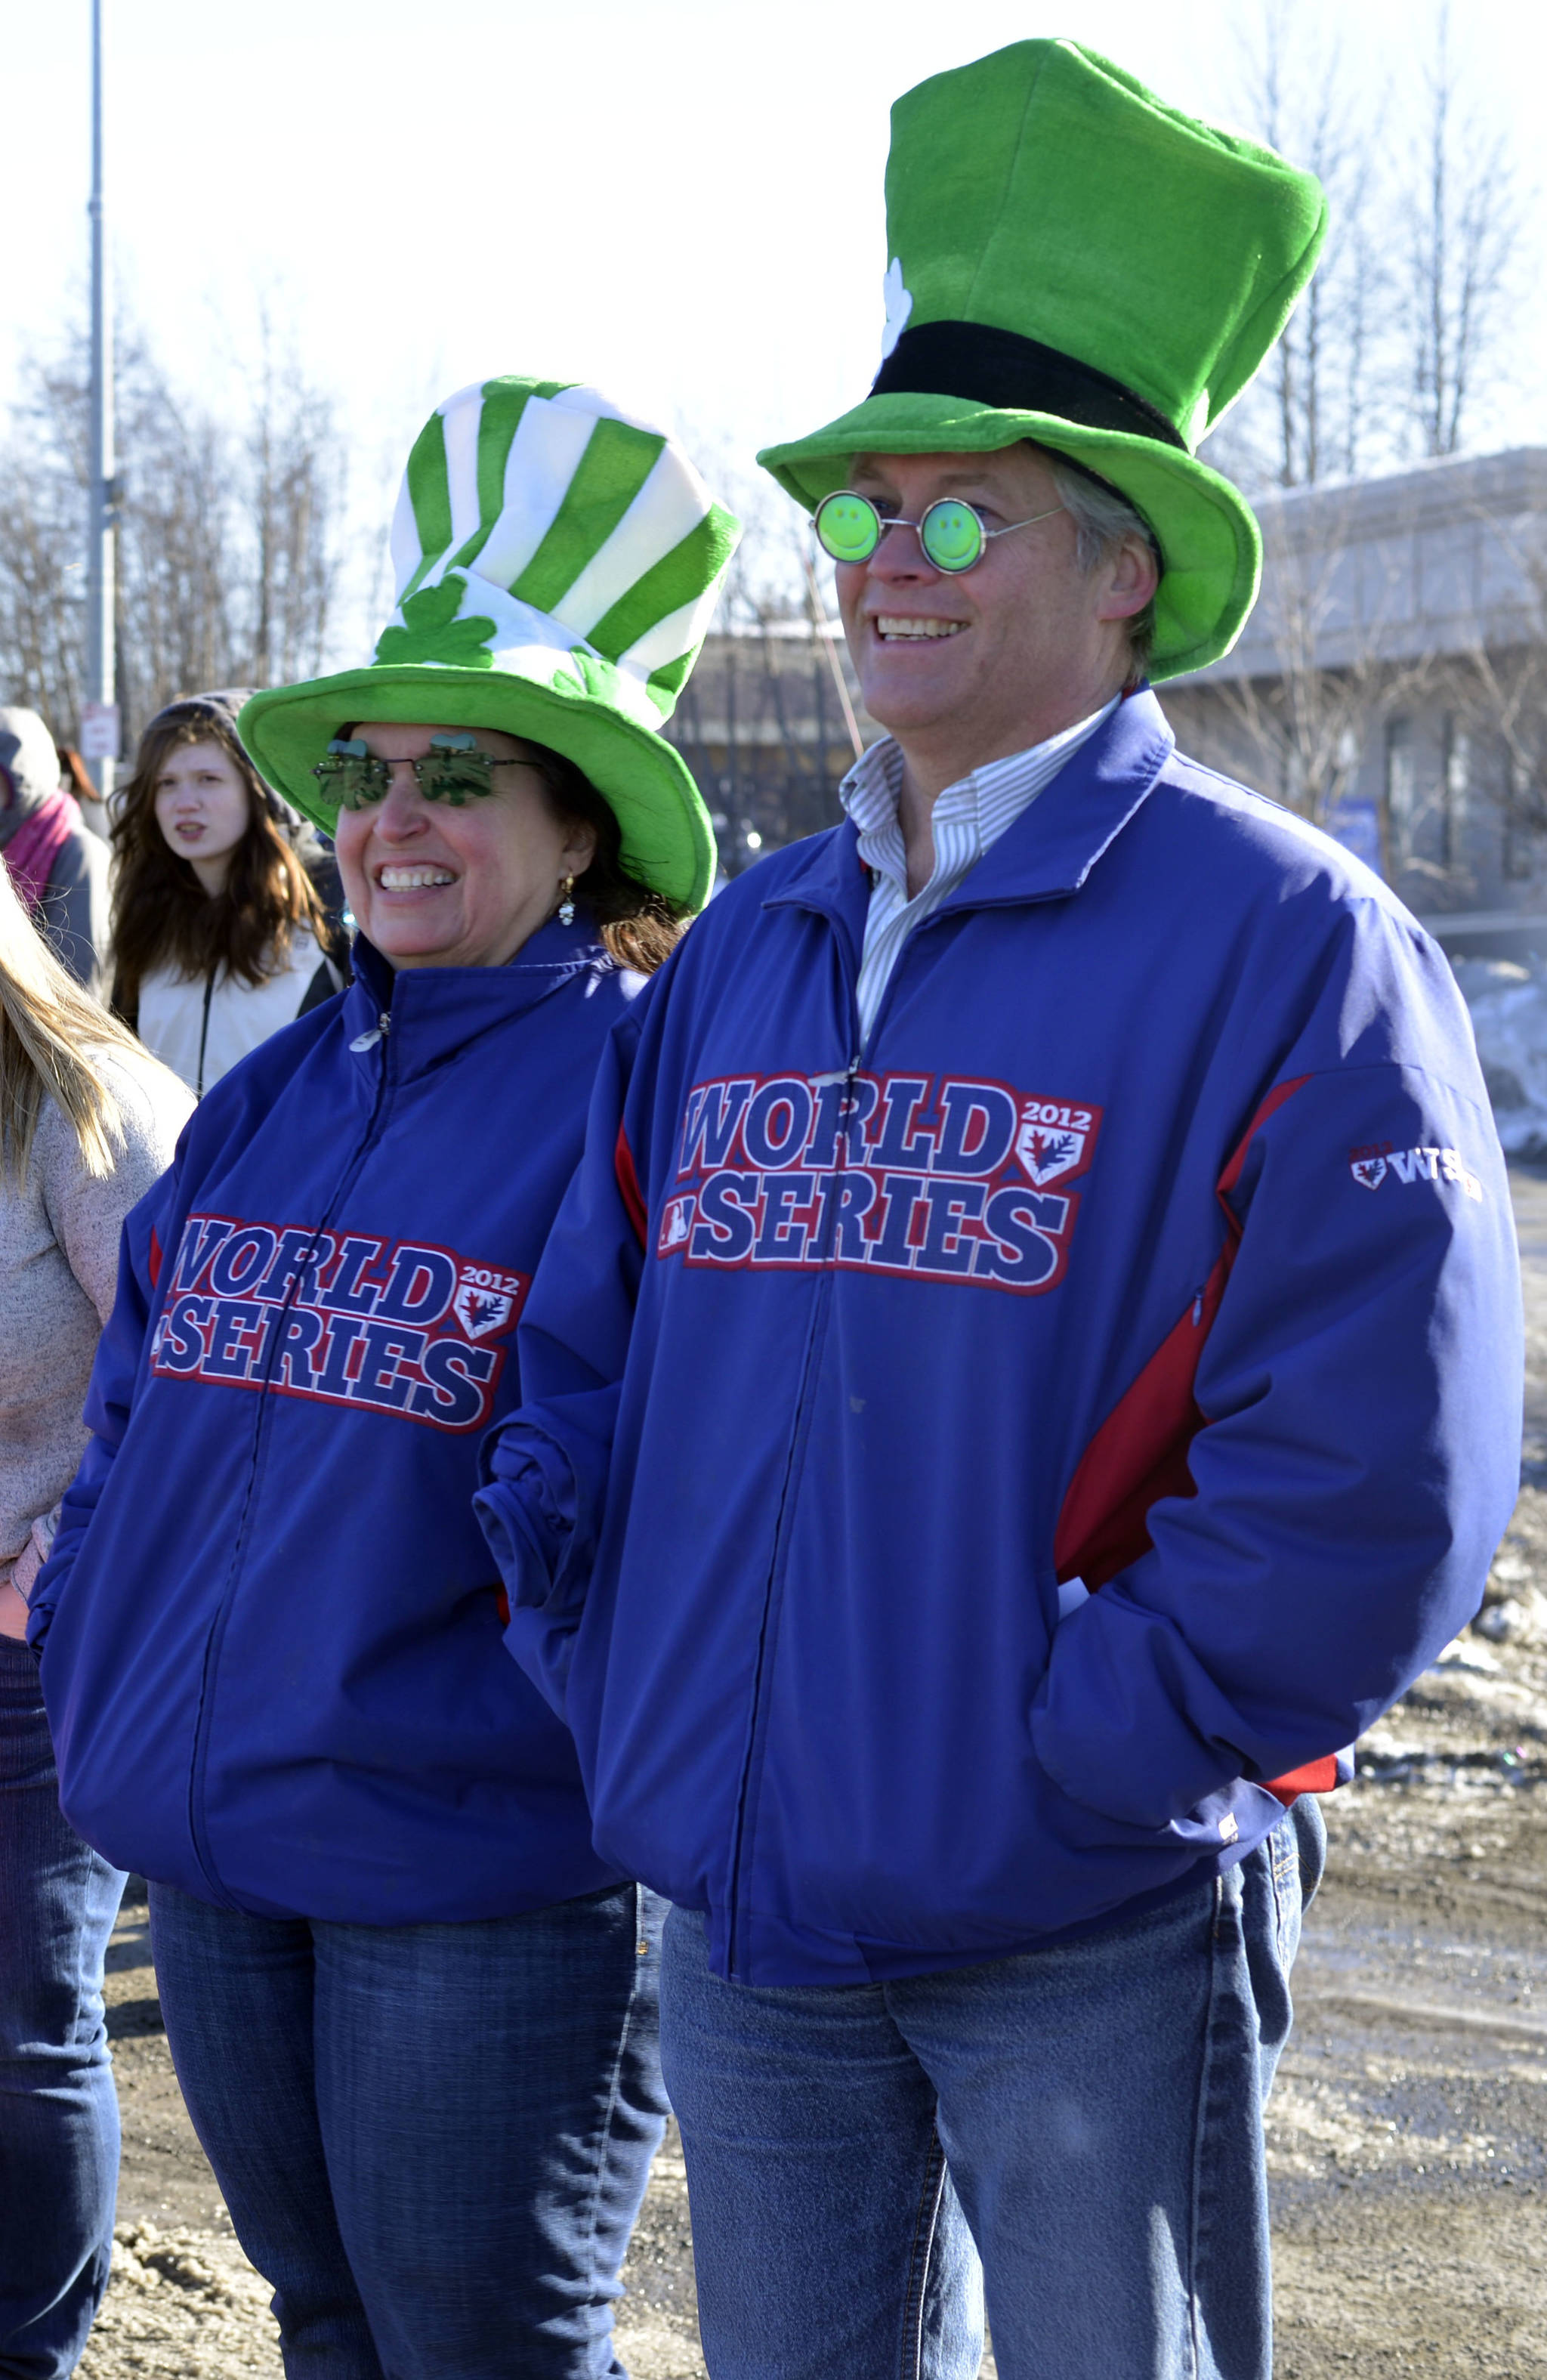 John and Nan Clonan wore their most Irish hats to watch the Soldotna St. Paddy's Day Parade on Friday, March 17, 2017 in Soldotna, Alaska. (Kat Sorensen/Peninsula Clarion)